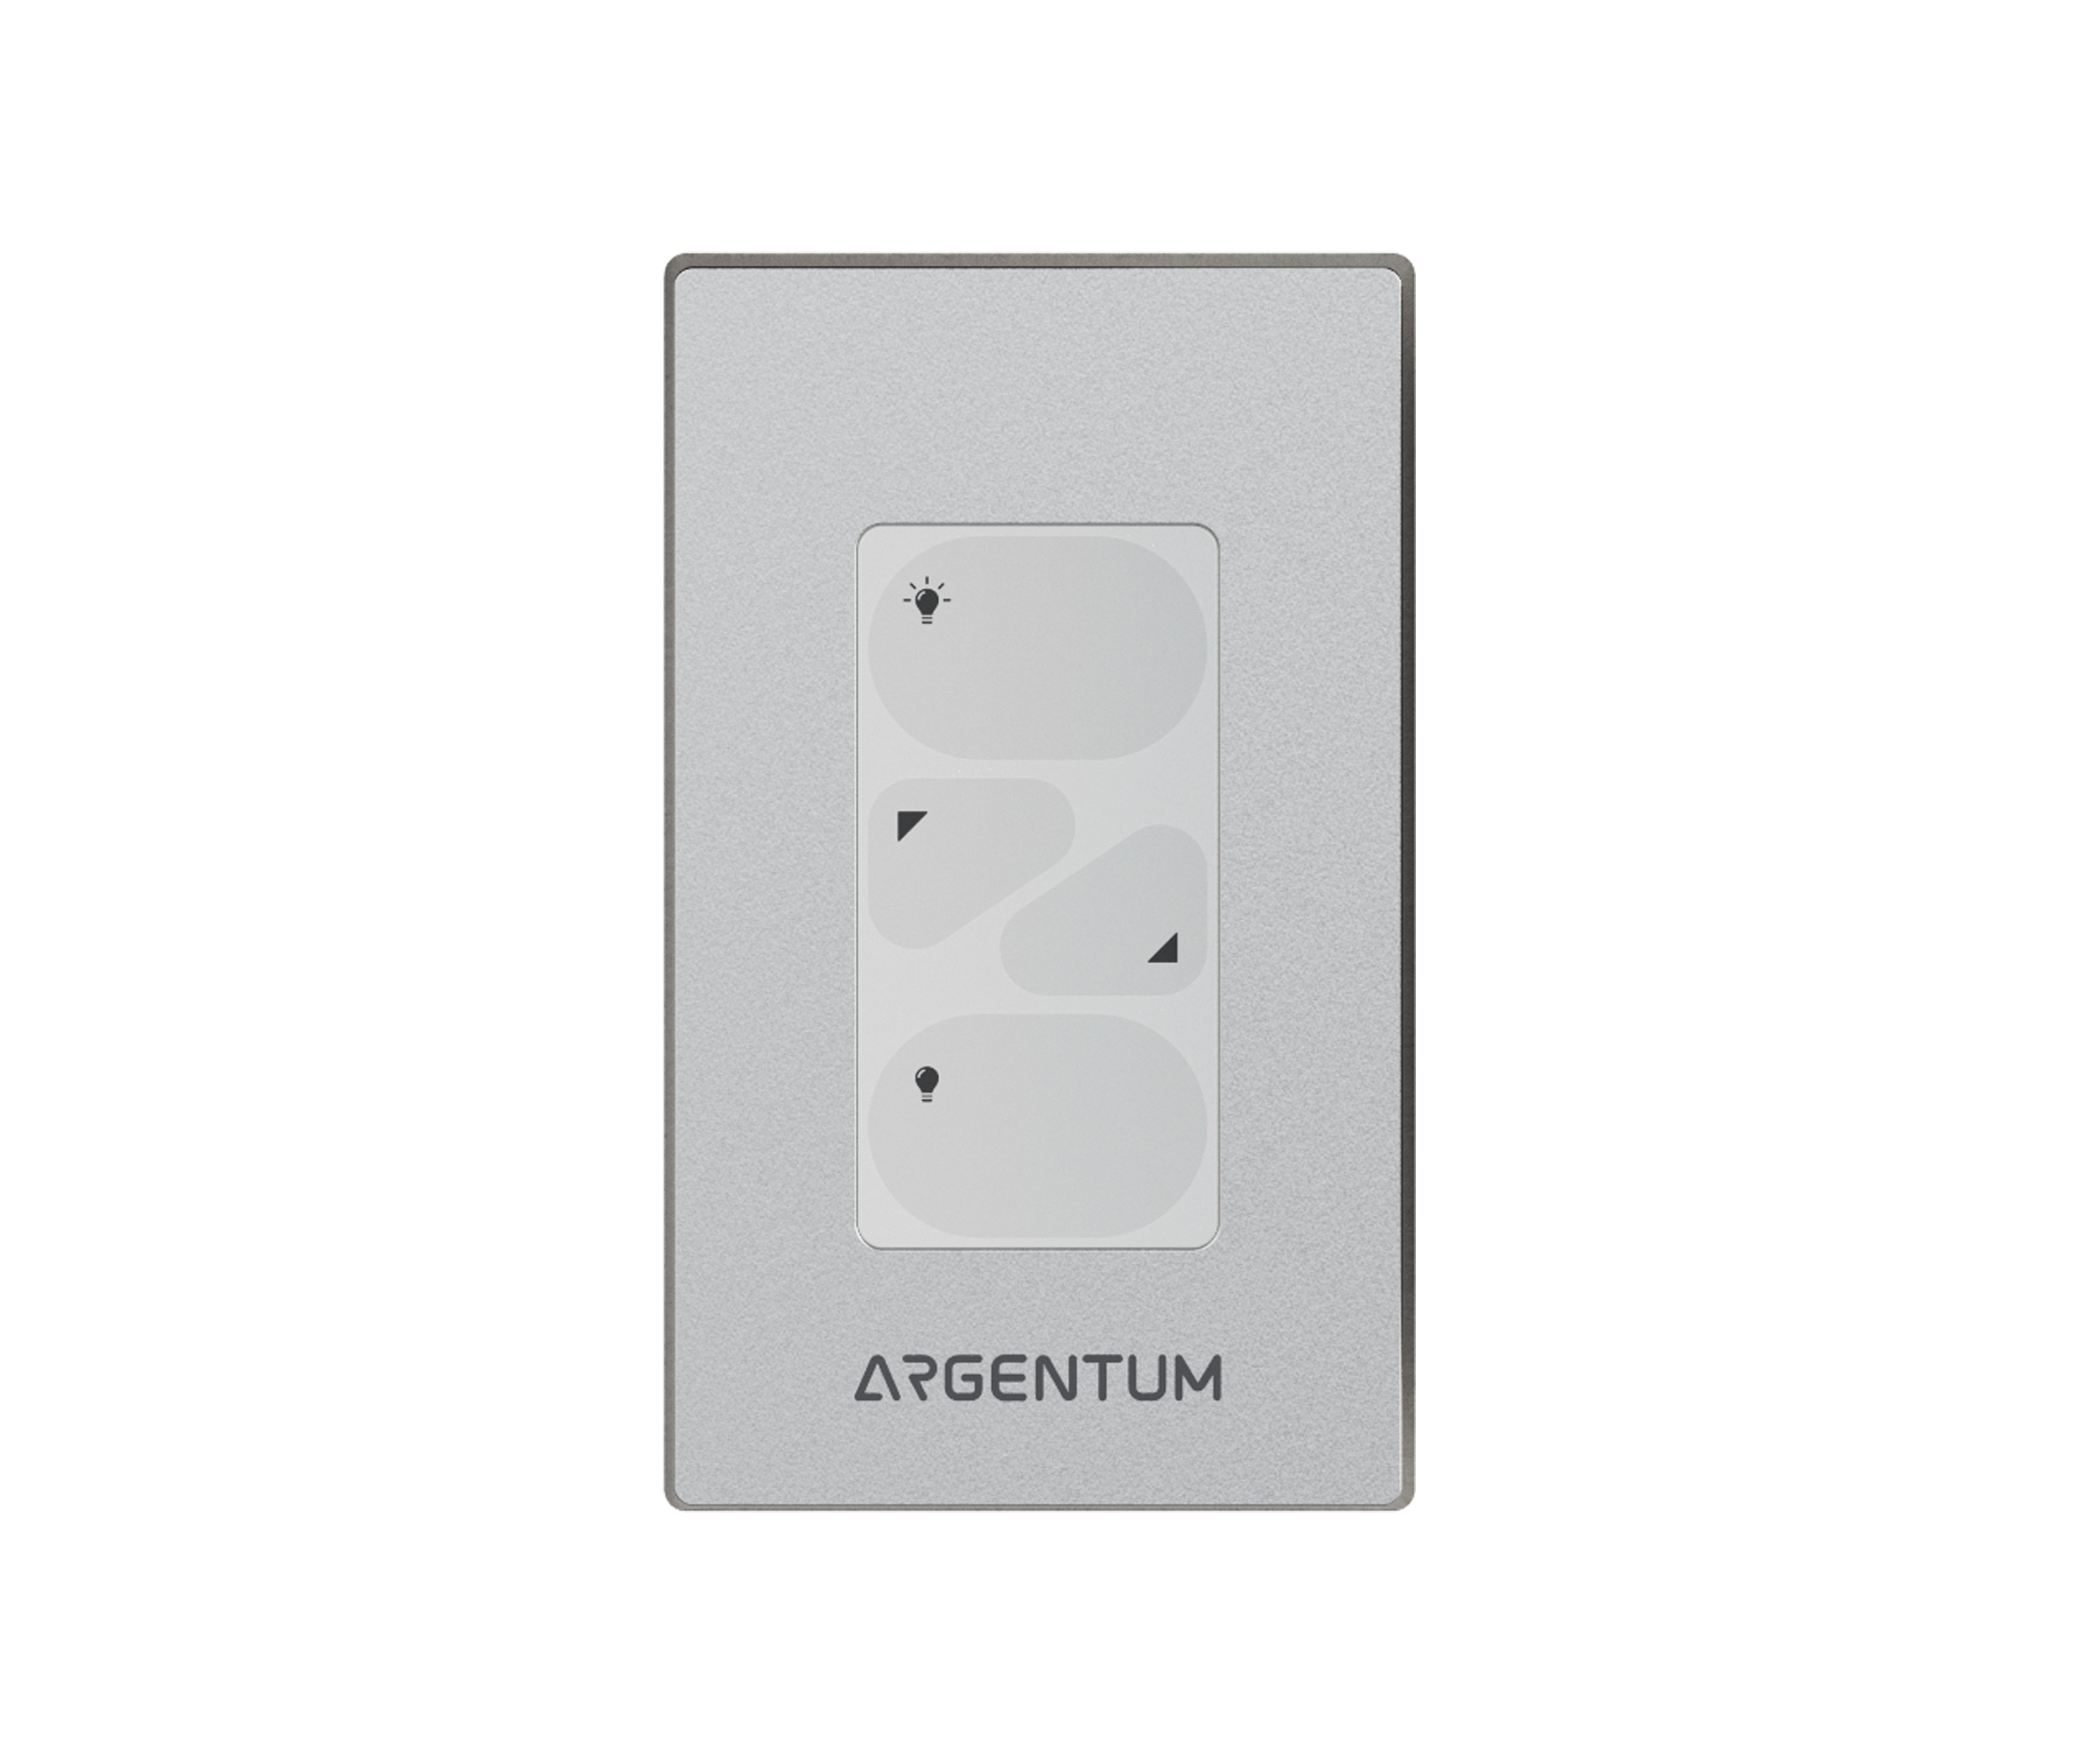 the argentum spacrswitch product